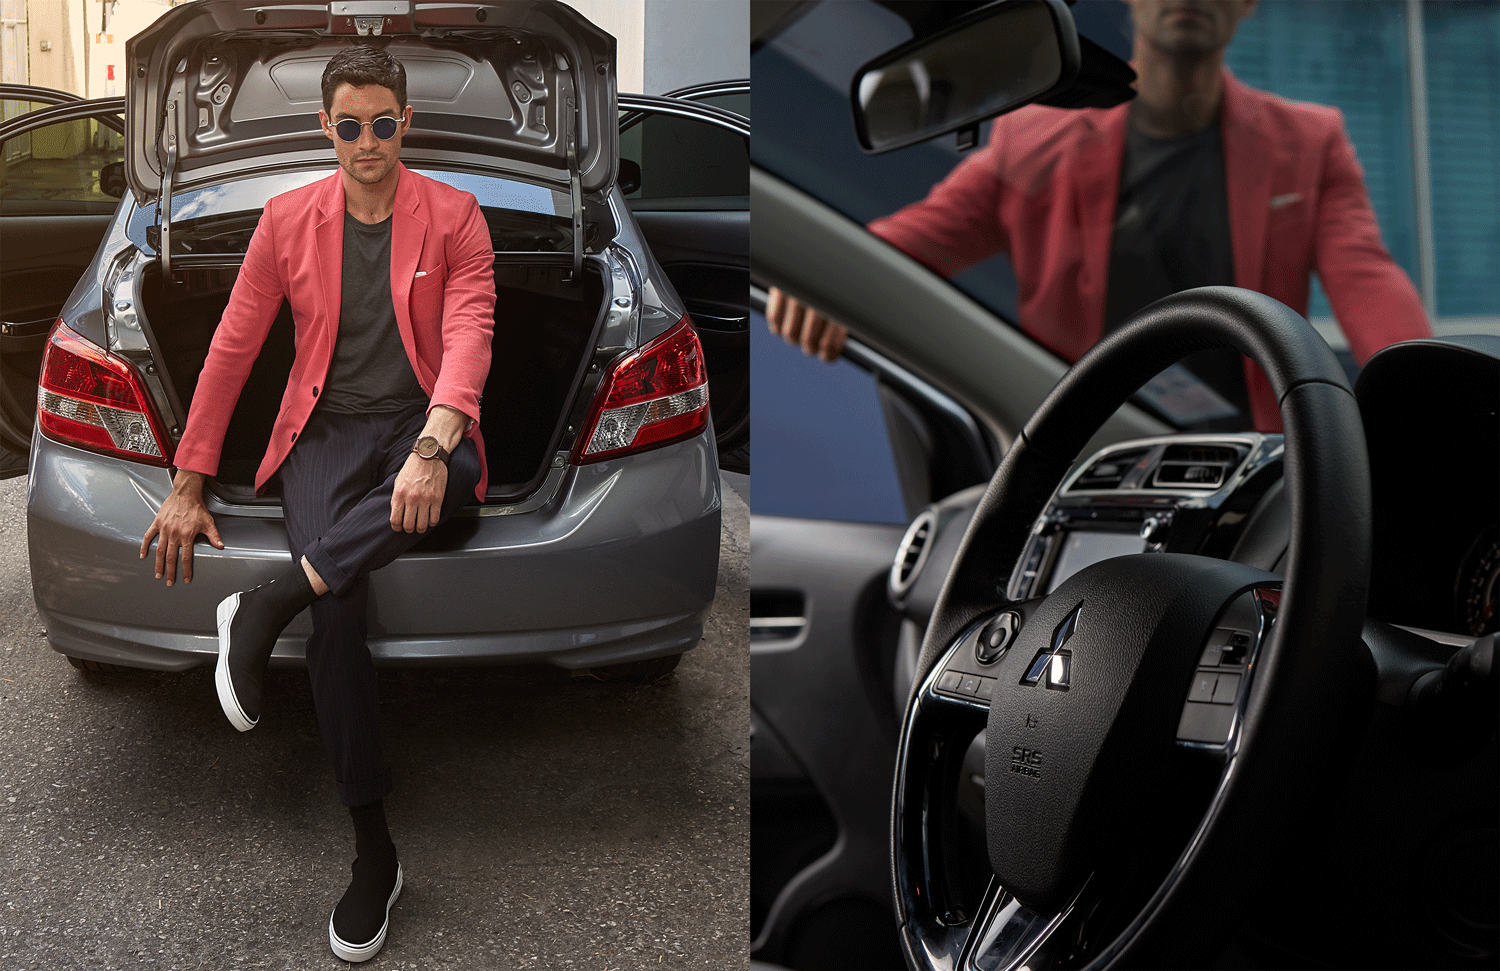 car : Mitsubishi NEW Attrage  clothes : SARIT / sunglasses : TAVAT / watch : FORREST / shoes : GIVENCHY